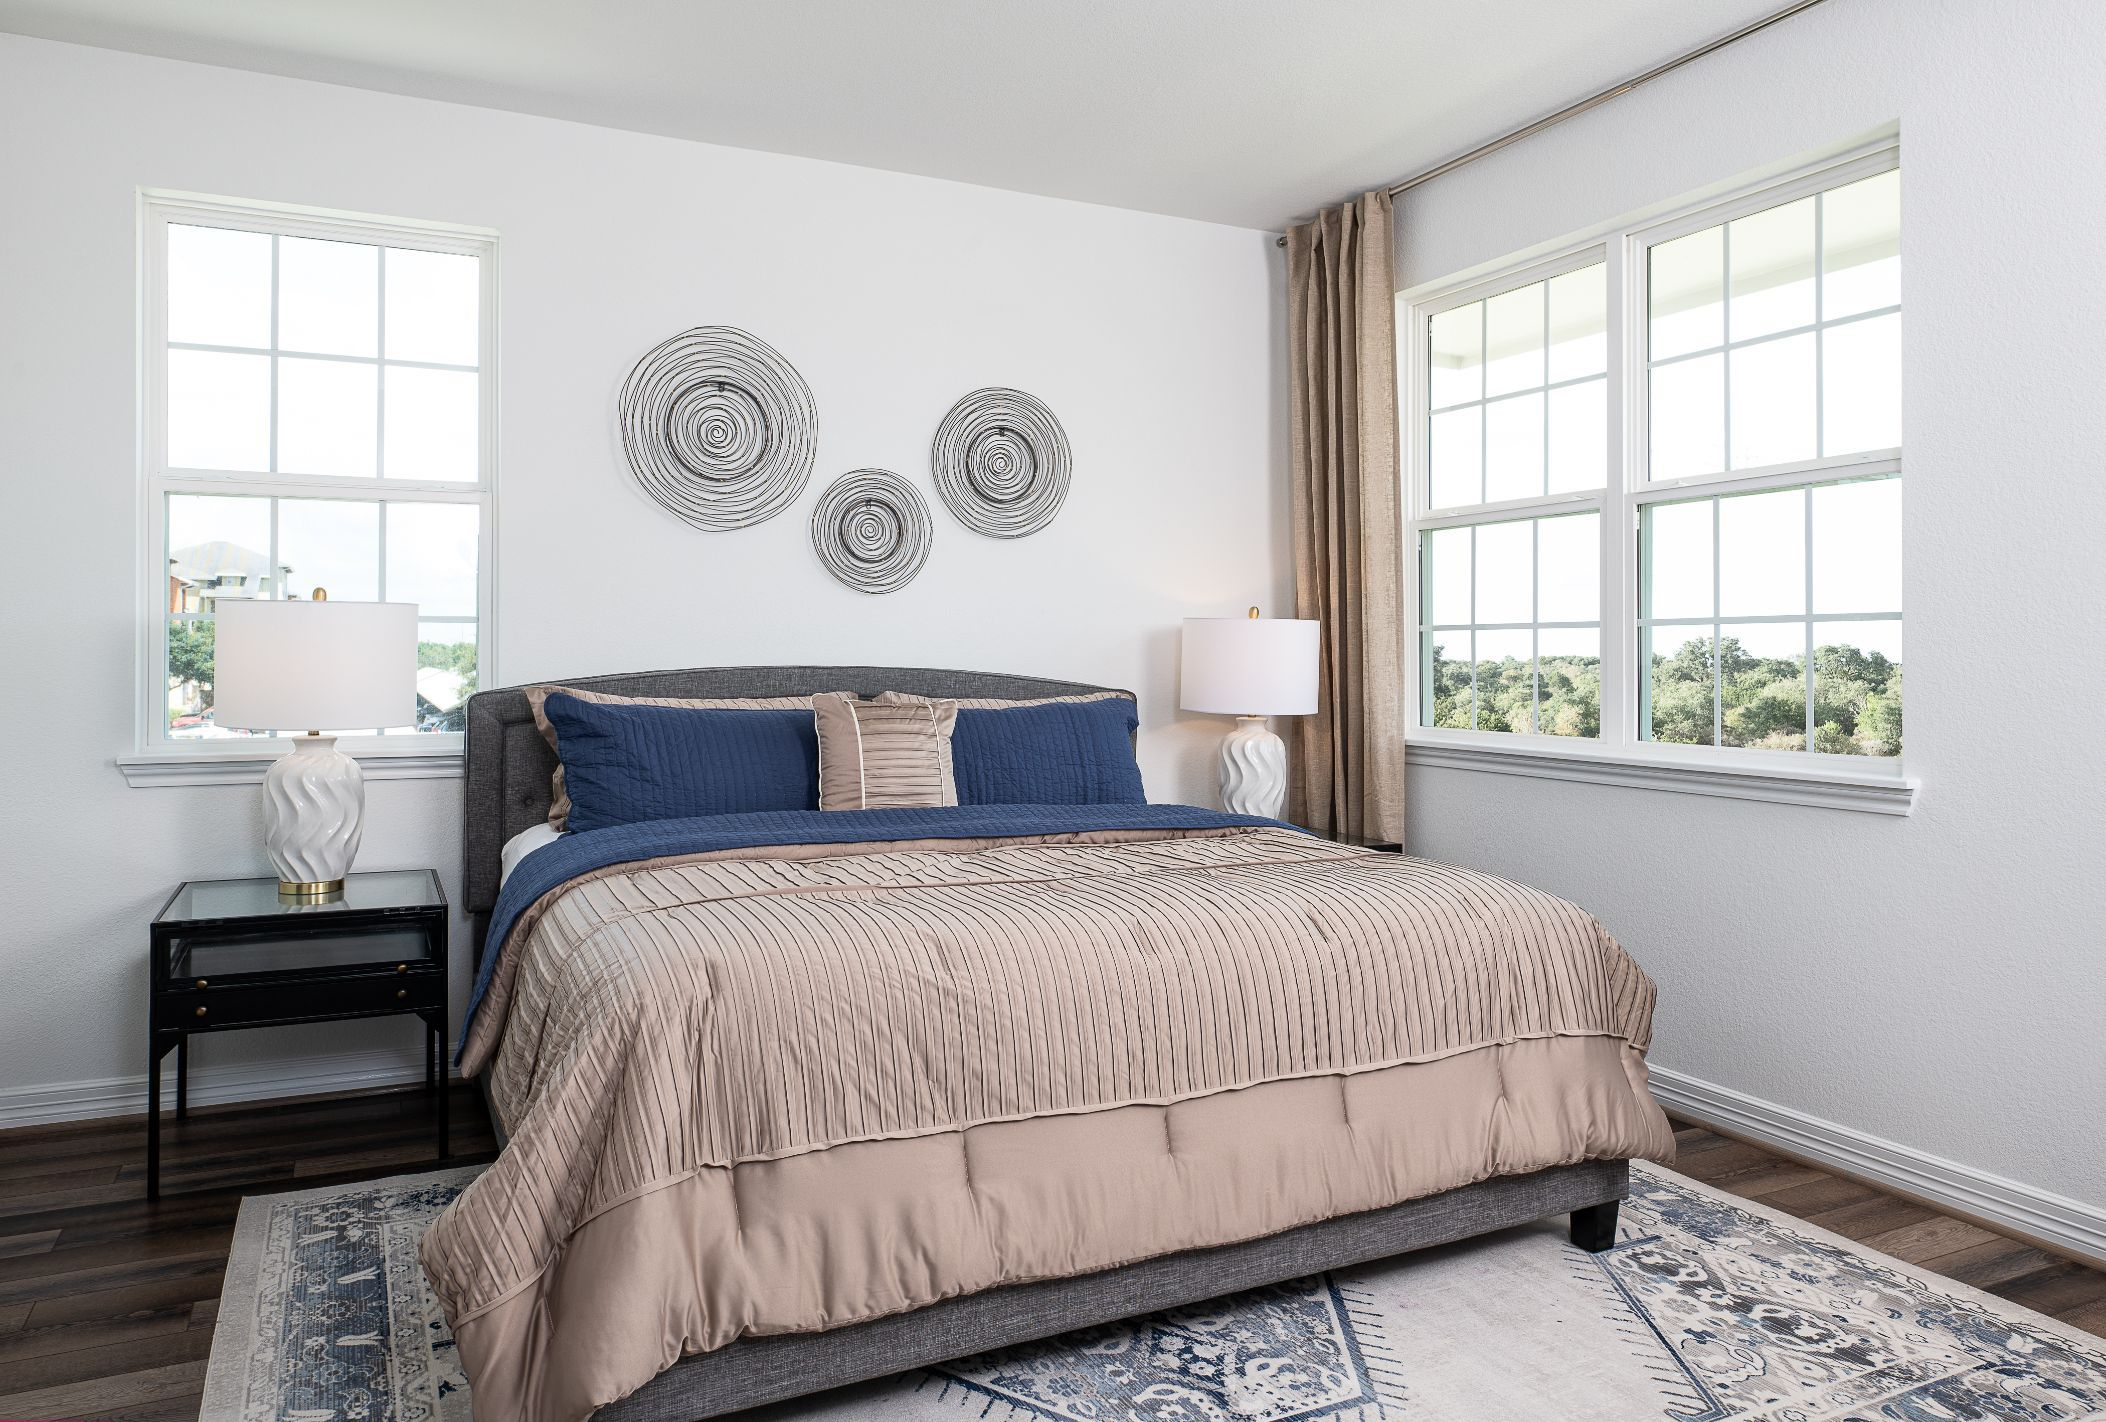 Bedroom featured in the Serena By Ashton Woods in Houston, TX